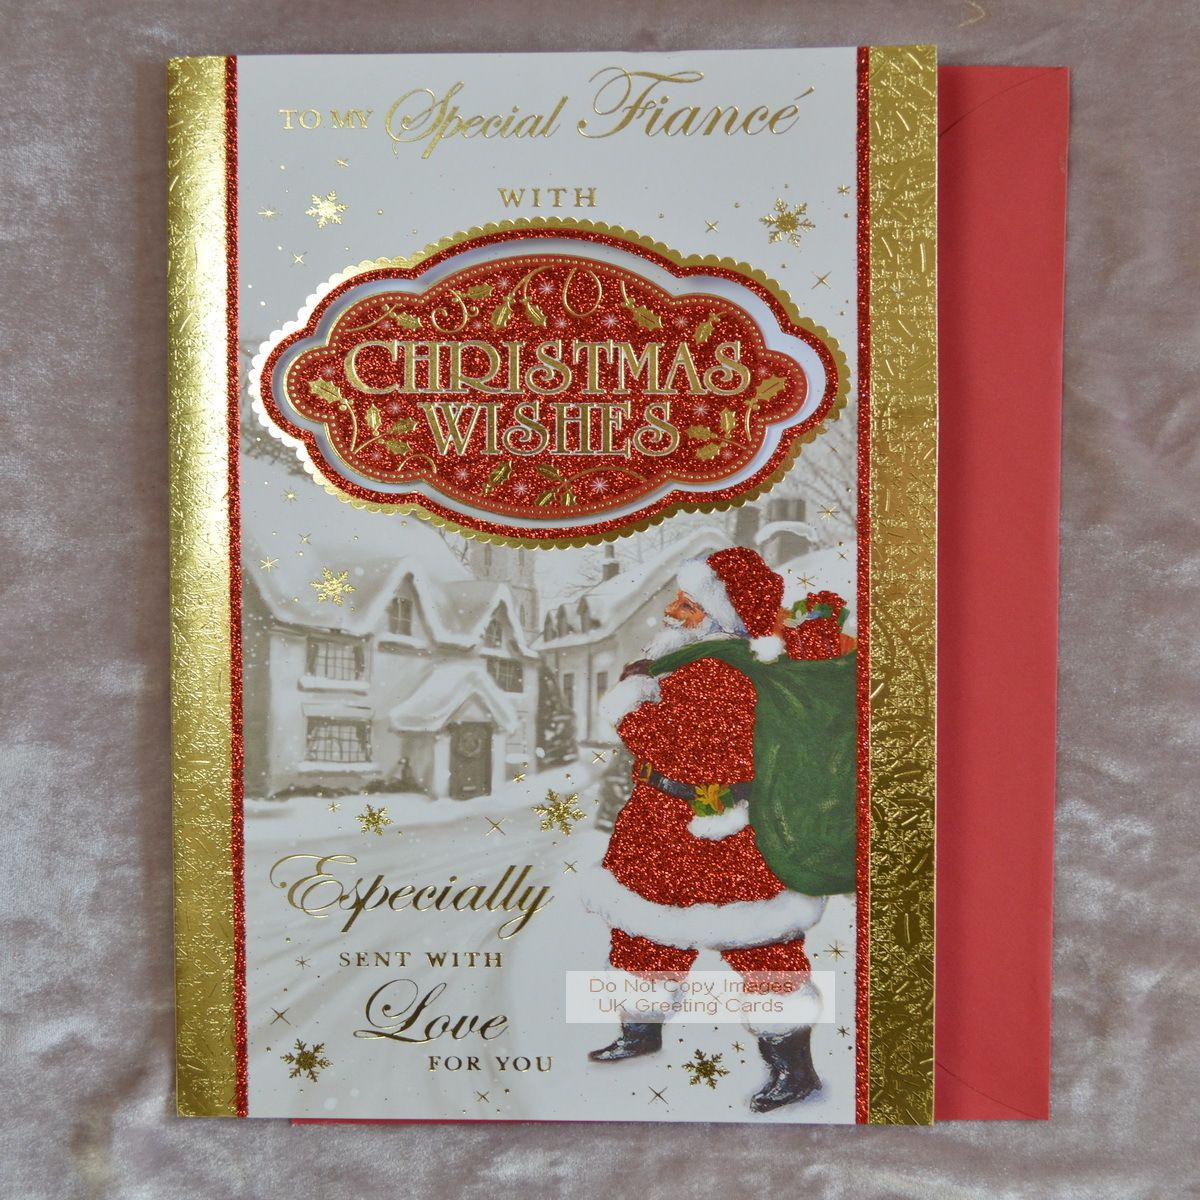 Uk greeting cards online special fiance christmas cards 295 uk greeting cards online special fiance christmas cards 295 http kristyandbryce Choice Image